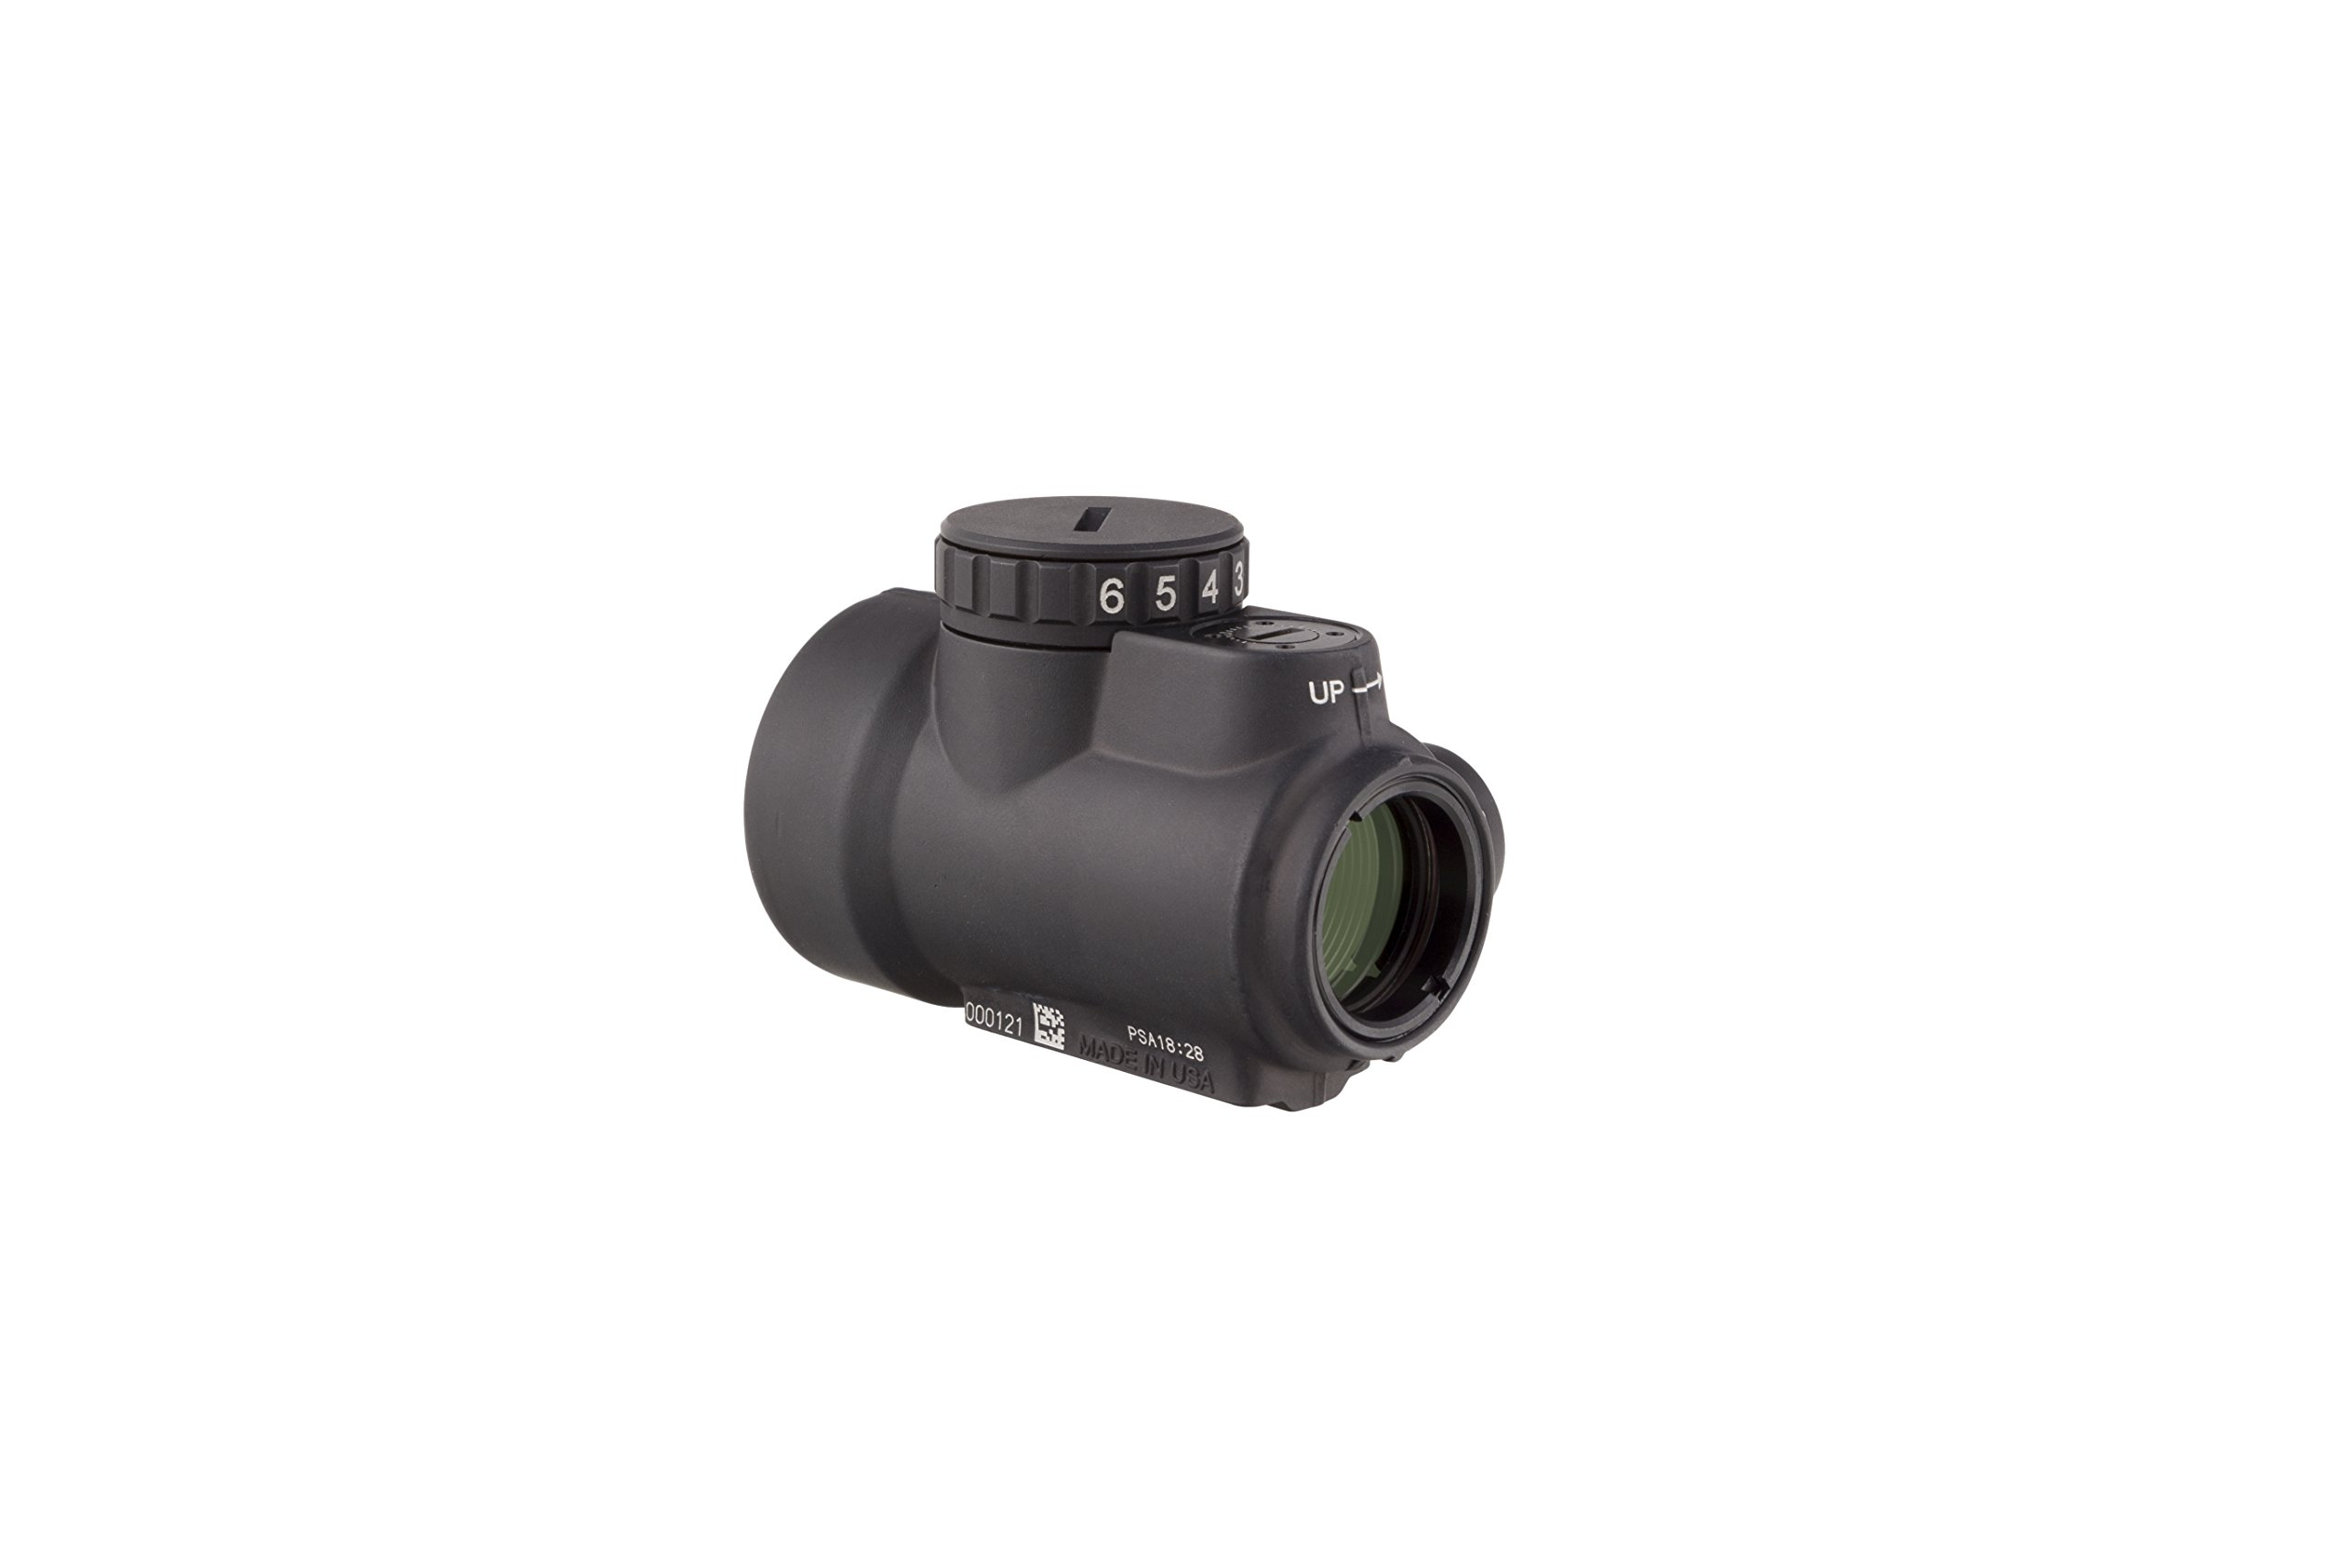 Trijicon MRO-C-2200003 1x25mm Miniature Rifle Optic (MRO) Riflescope with 2.0 MOA Adjustable Red Dot Reticle (Without Mount) by Trijicon (Image #4)